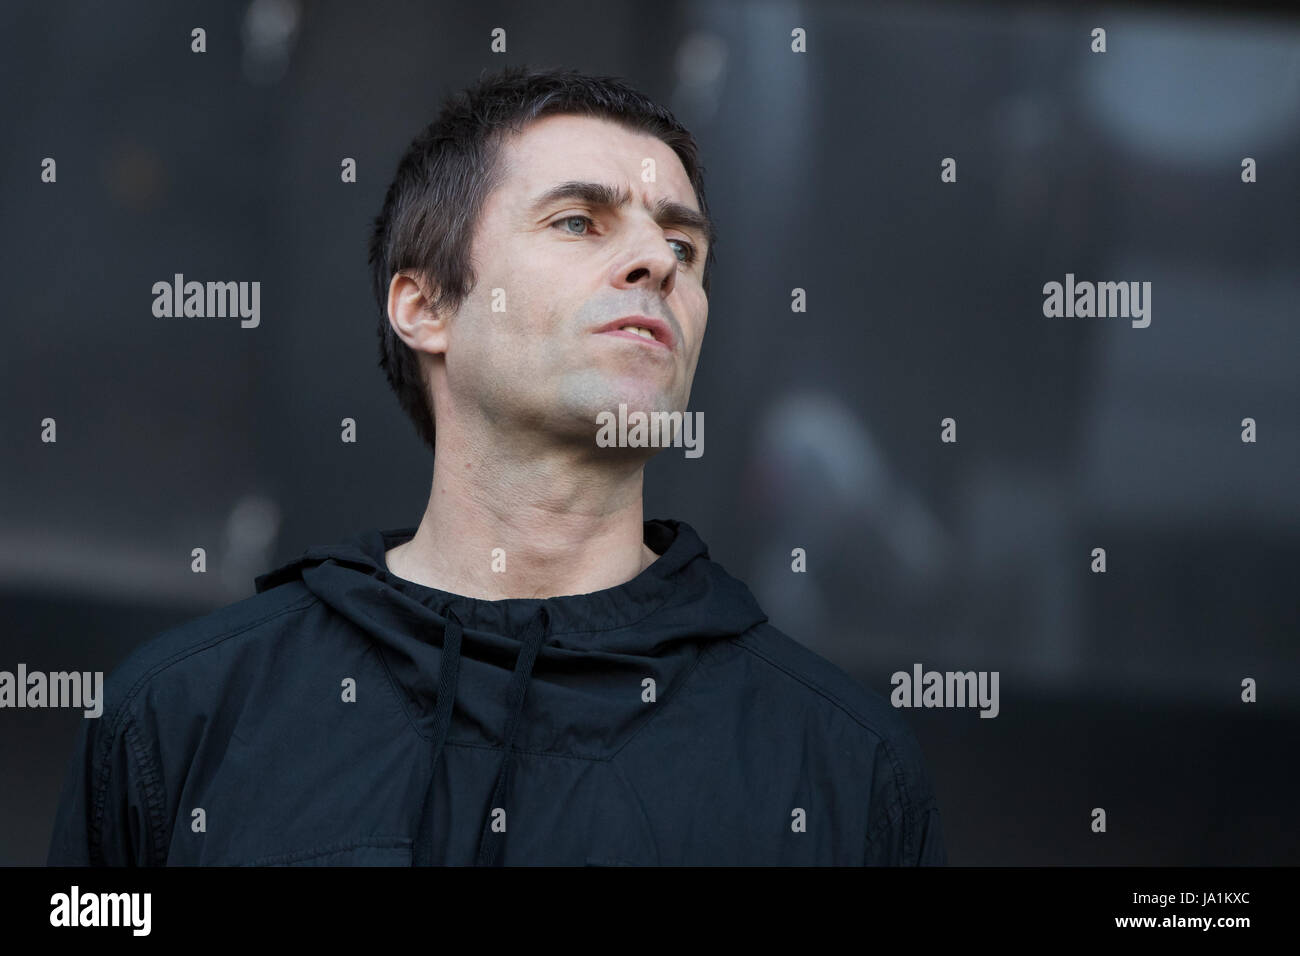 Nuremberg, Germany. 4th June, 2017. British singer Liam Gallagher performing at the Rock im Park music festival - Stock Image